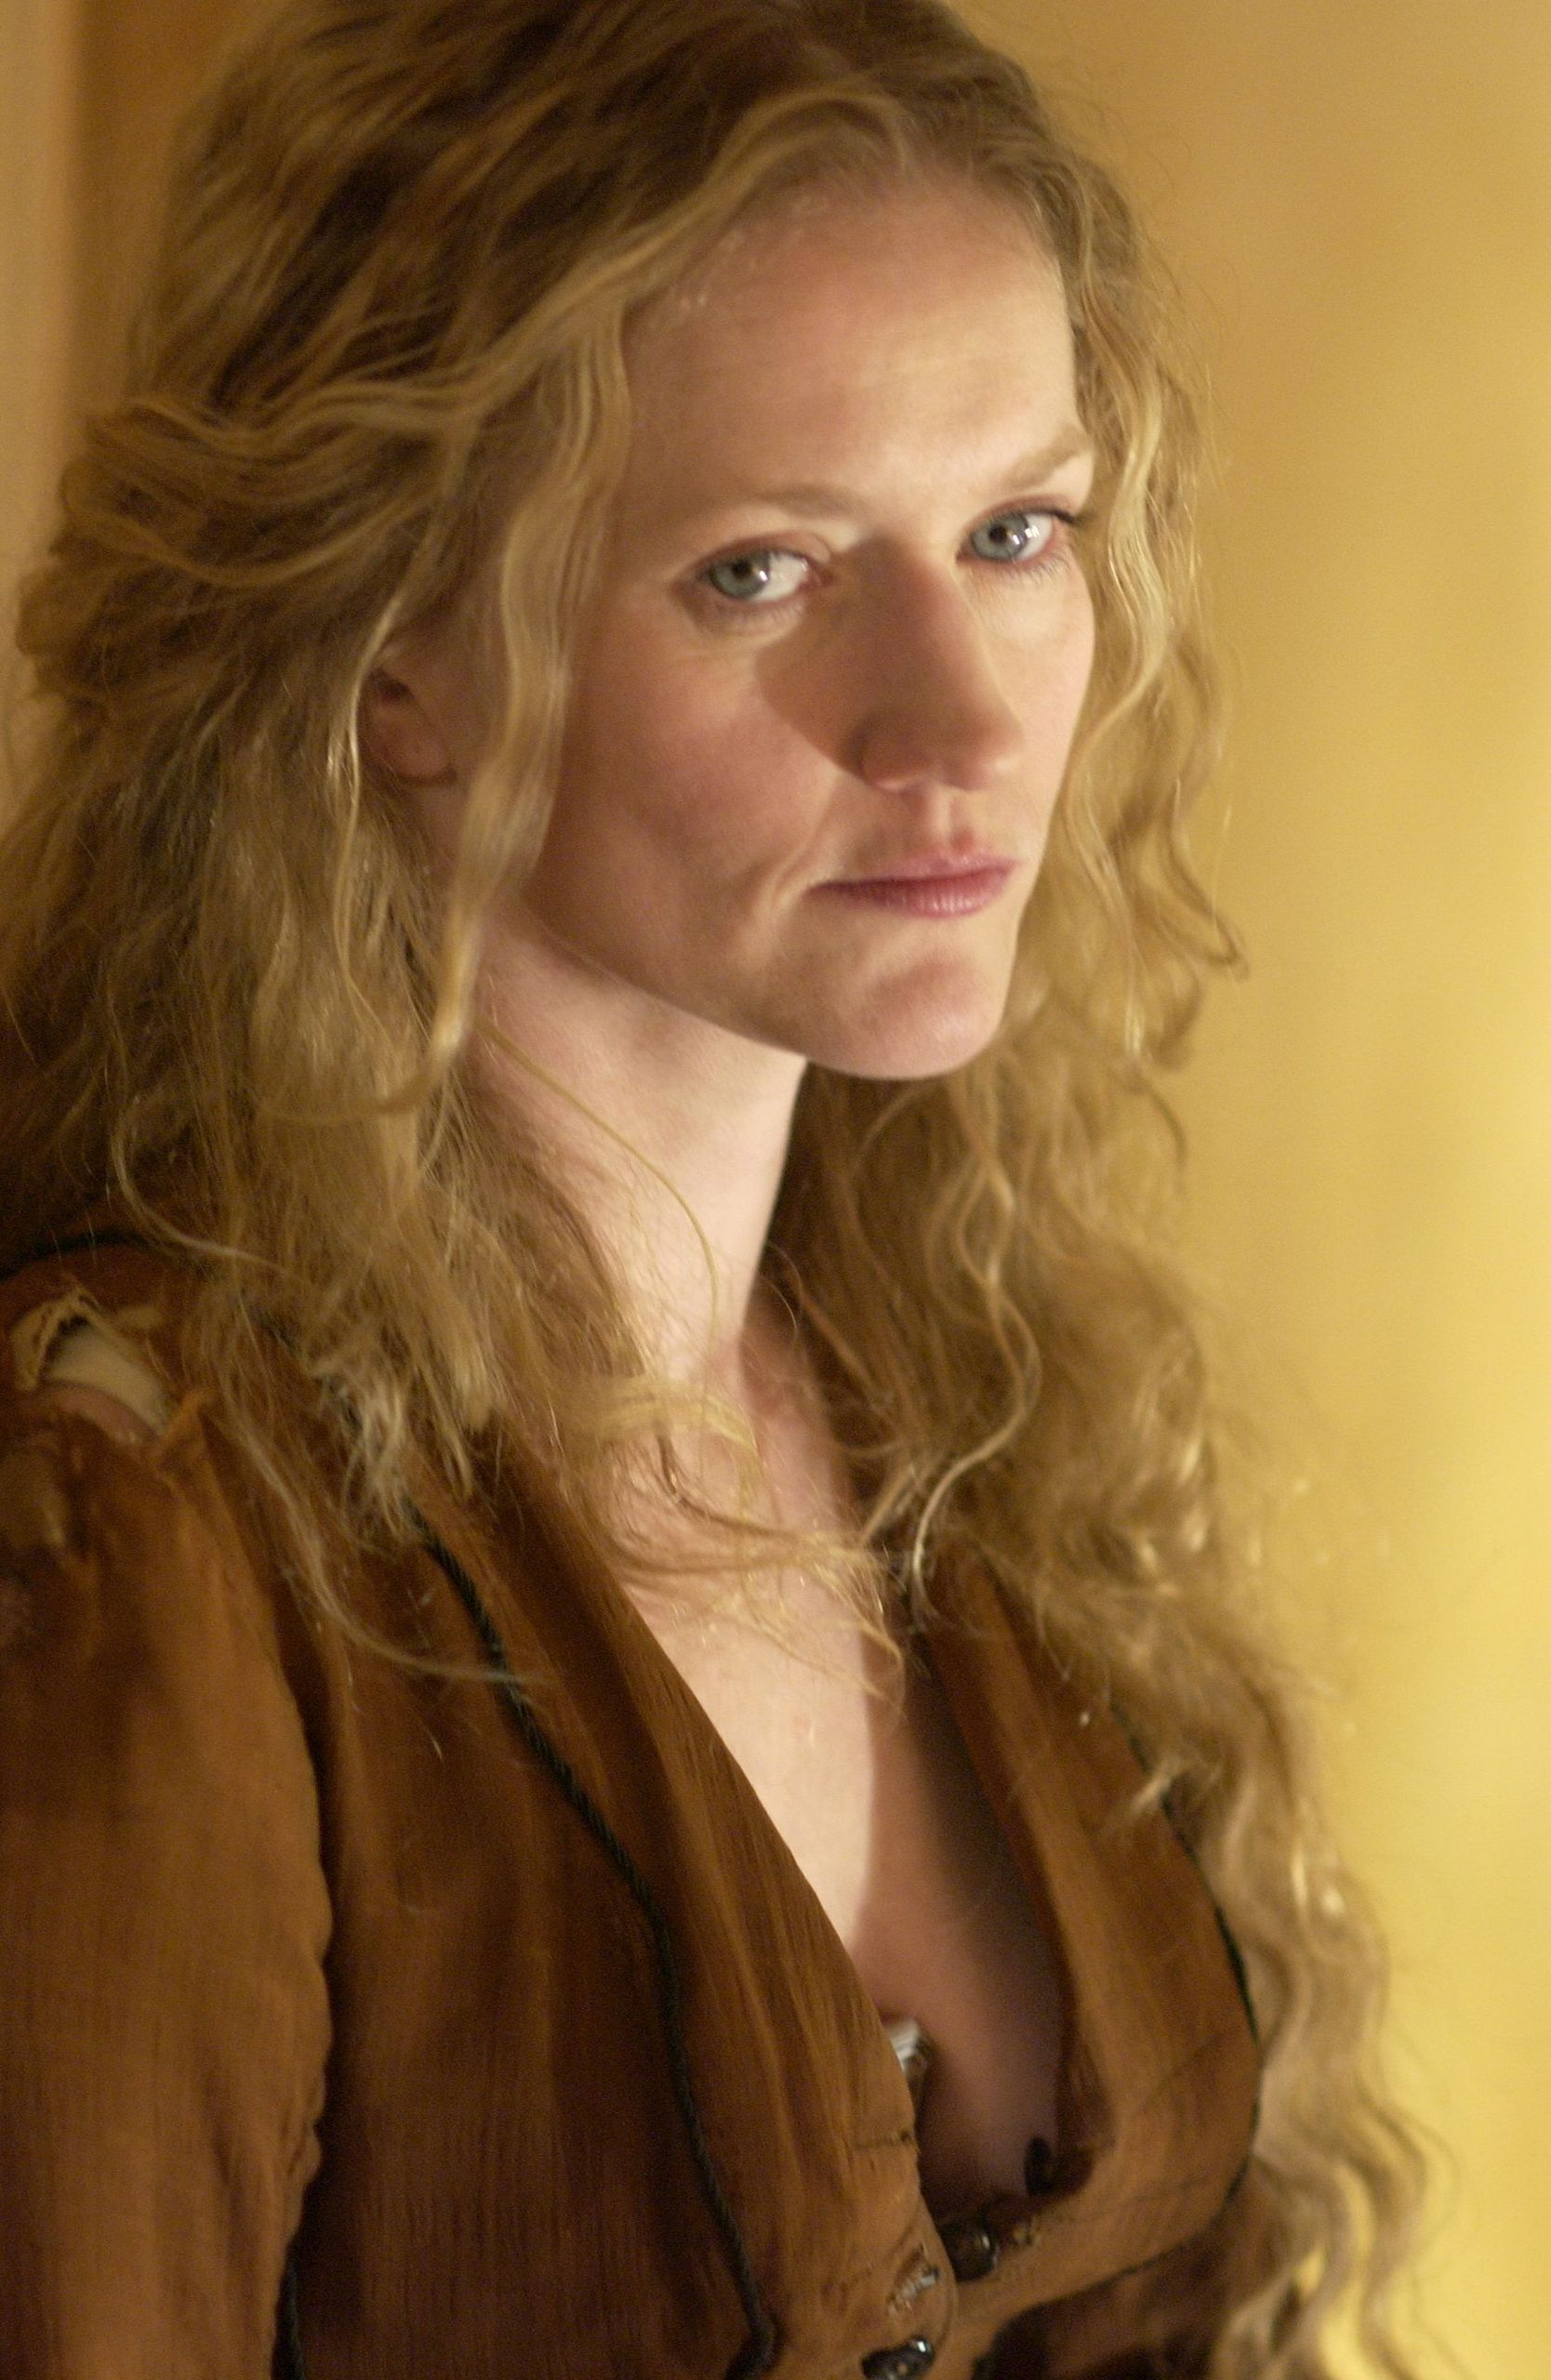 ICloud Paula Malcomson naked (81 foto and video), Topless, Cleavage, Selfie, cleavage 2015